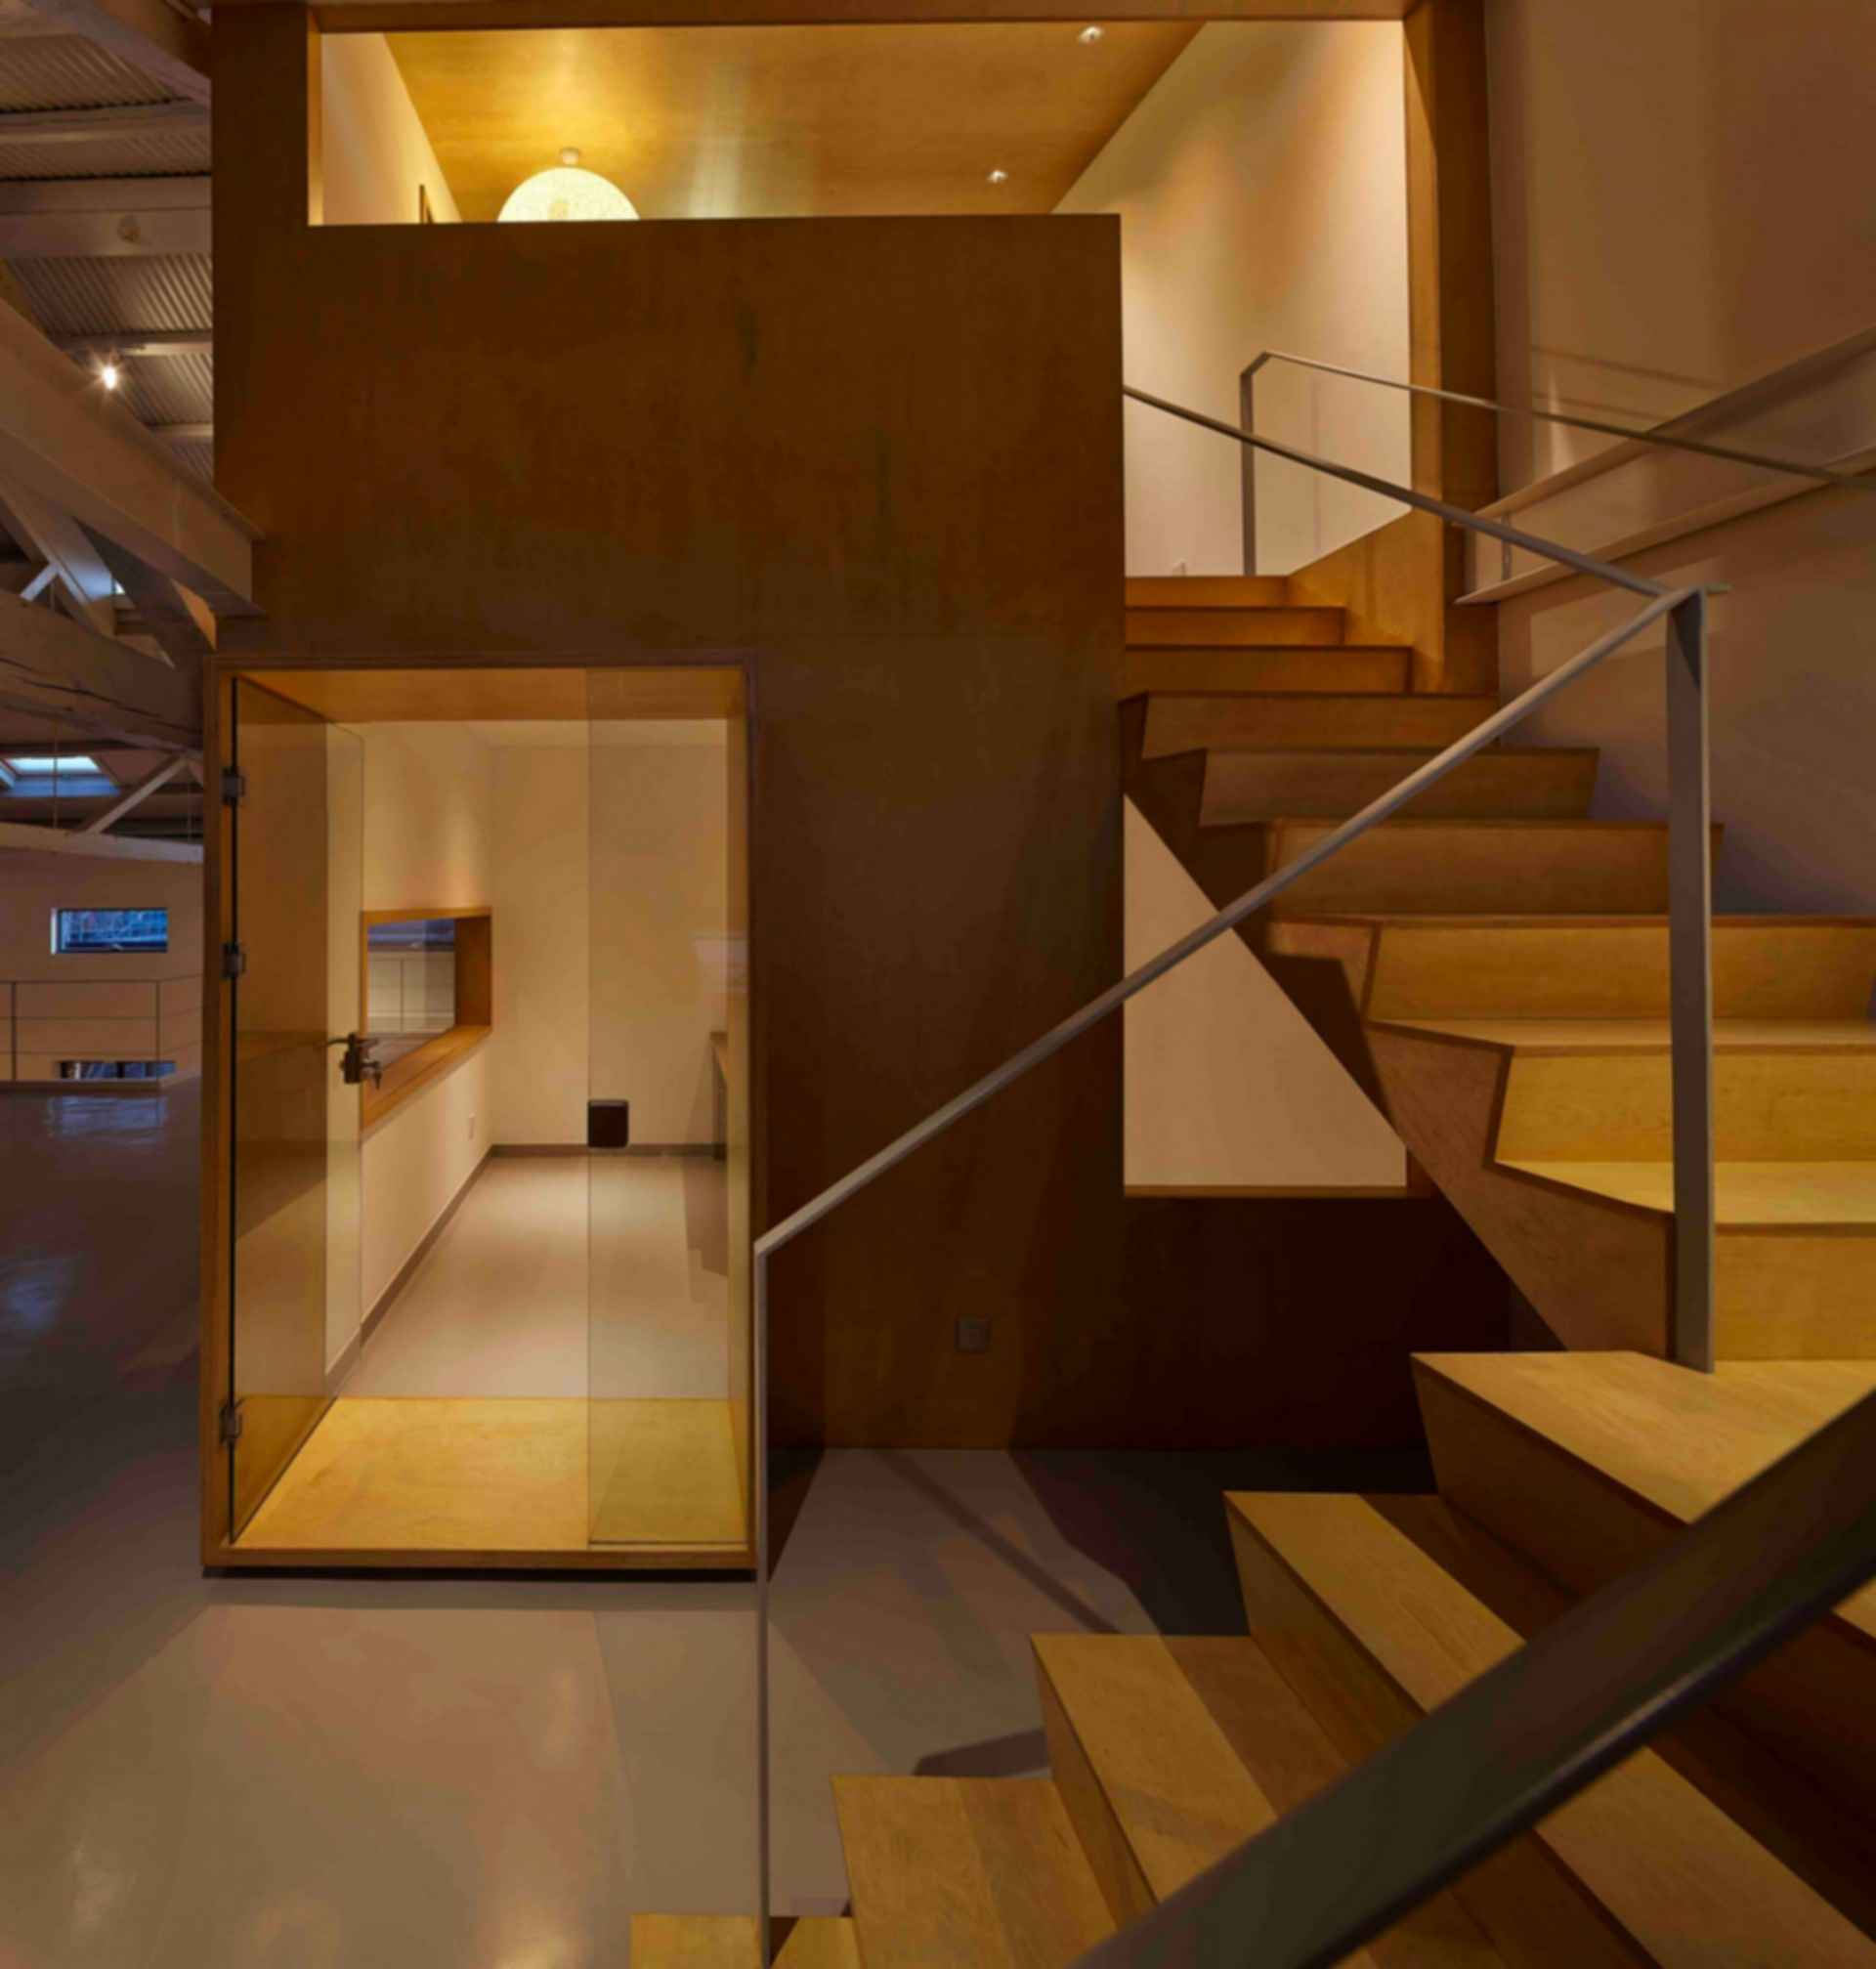 Arrow Factory: Hutong Media & Culture Creative Space - interior stairs